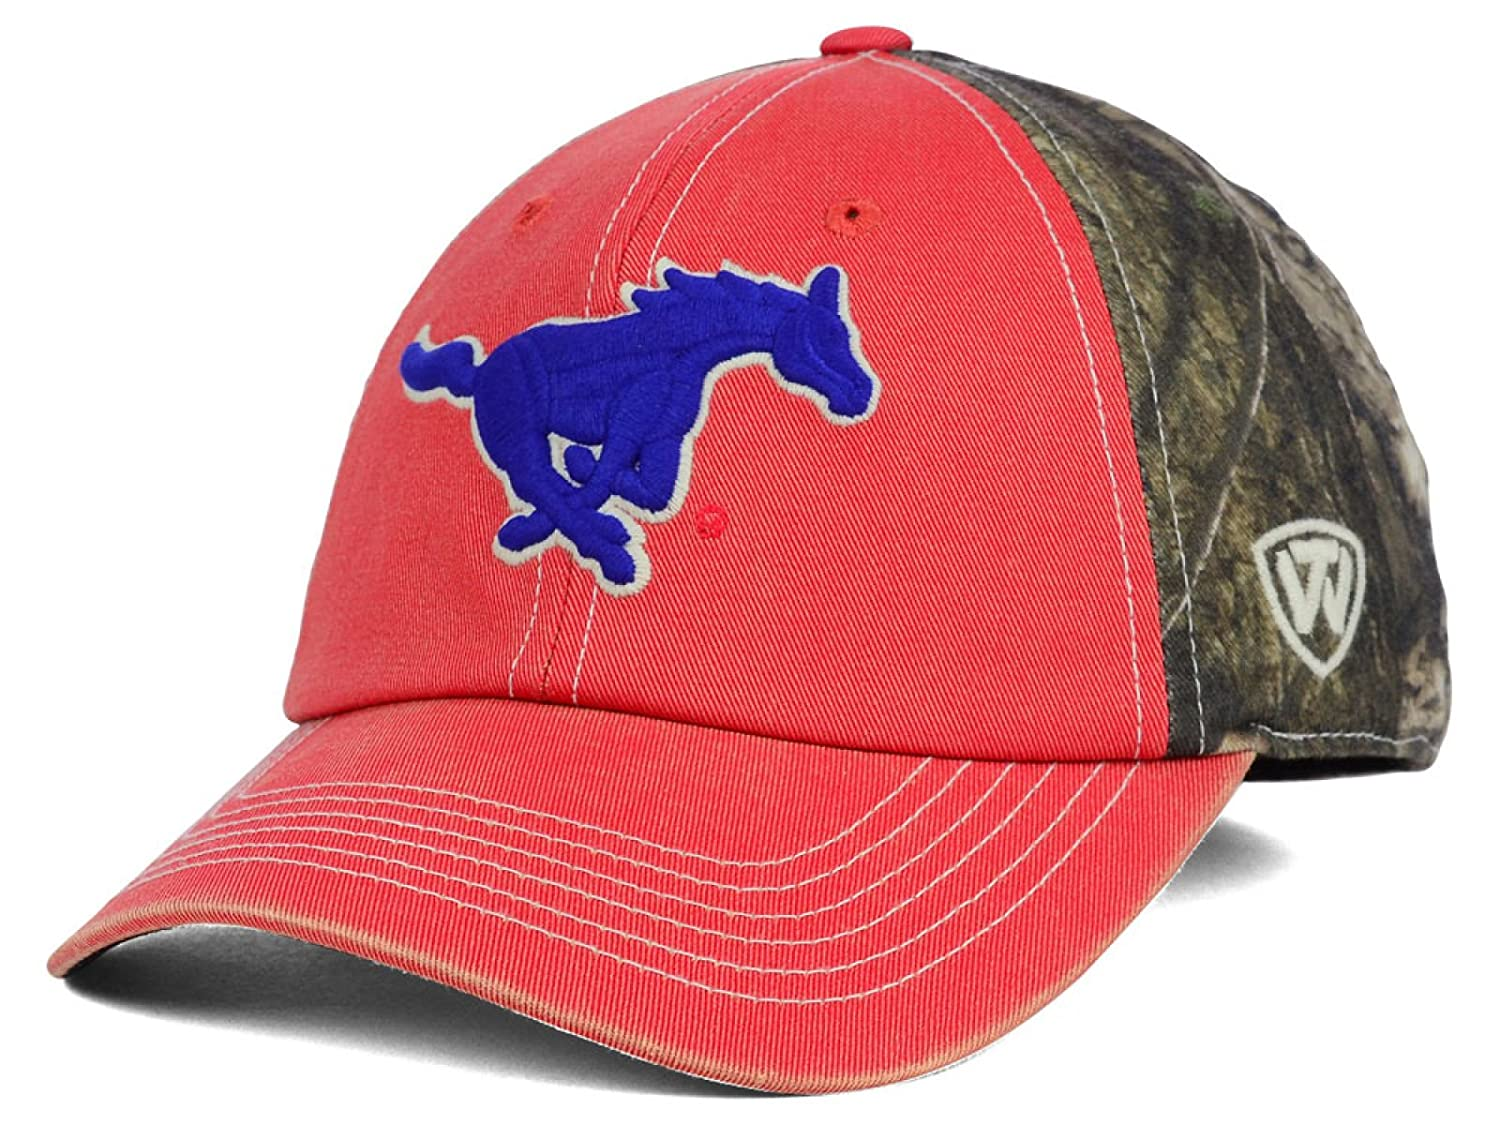 Southern Methodist Mustangs NCAA Top of the World Dirty camo Stretch Fitted Hatキャップ   B075RQKFPQ